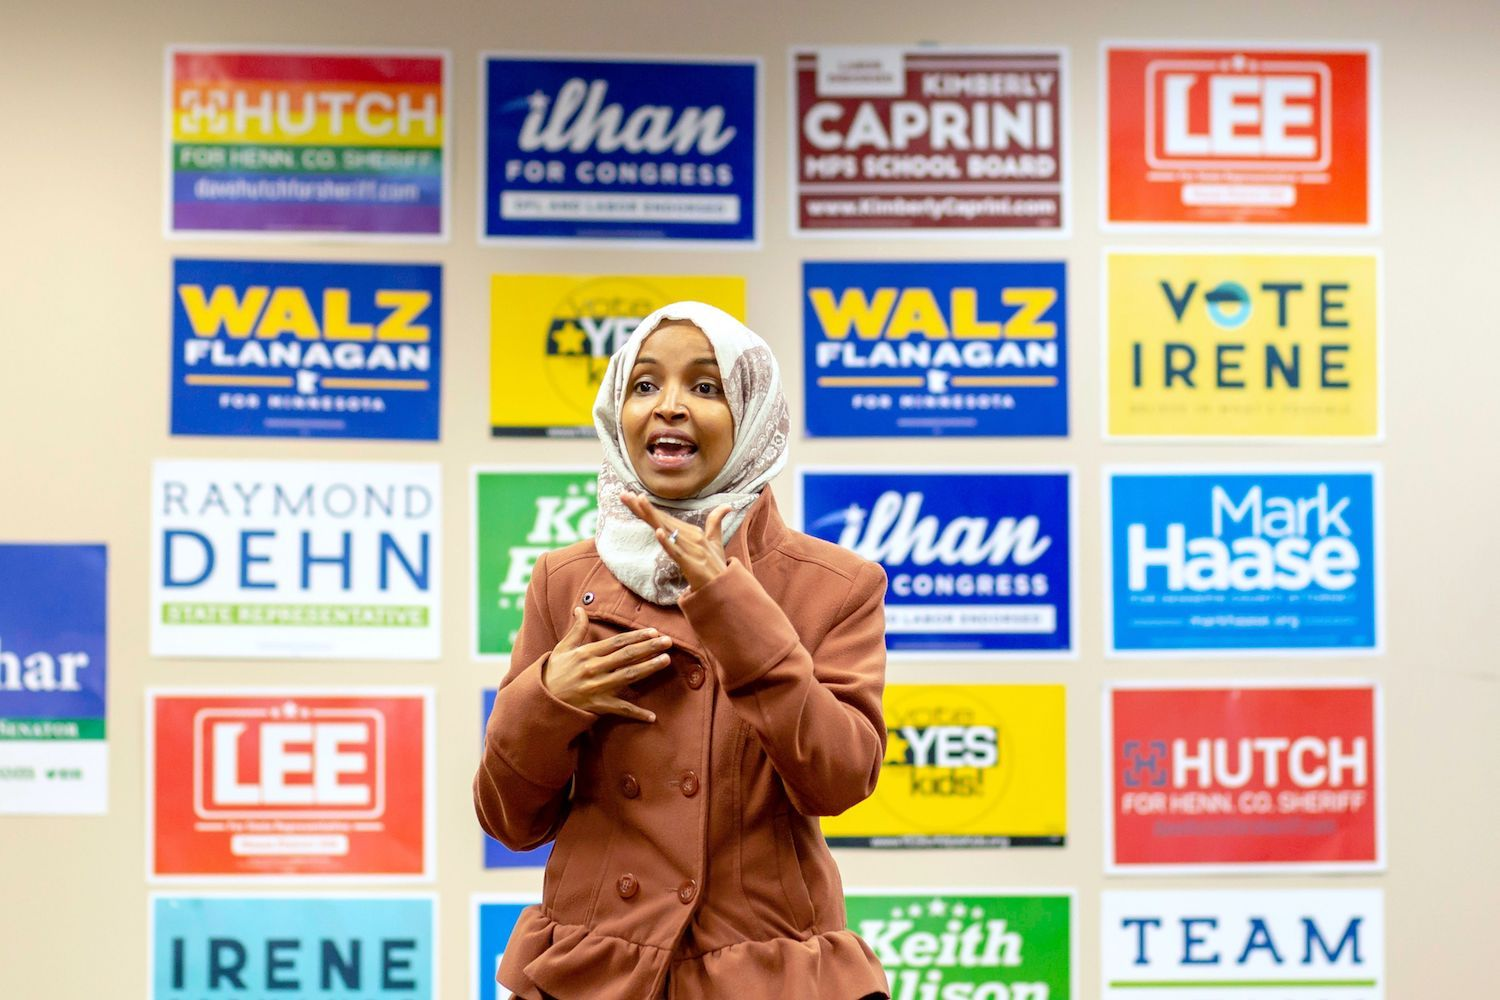 Democratic congressional candidate Ilhan Omar speaks to a group of volunteers in Minneapolis, Minnesota, on October 13, 2018. (KEREM YUCEL/AFP/GETTY IMAGES)